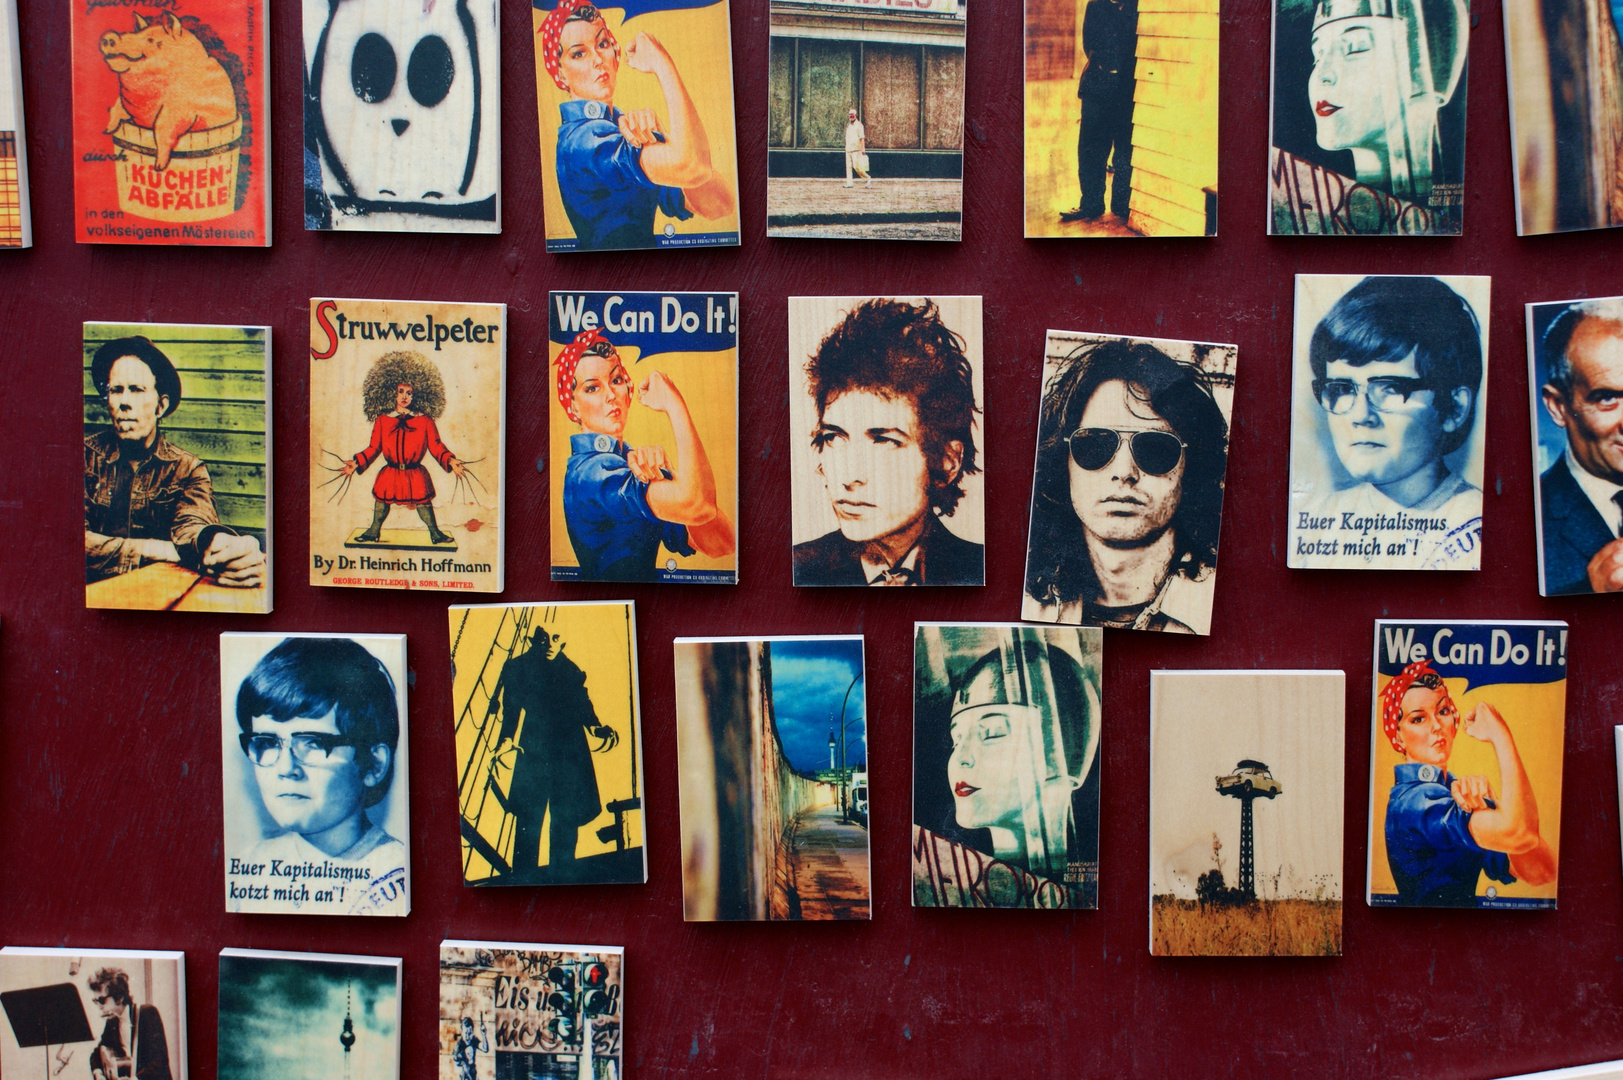 Bob Dylan, Jim Morrison and others